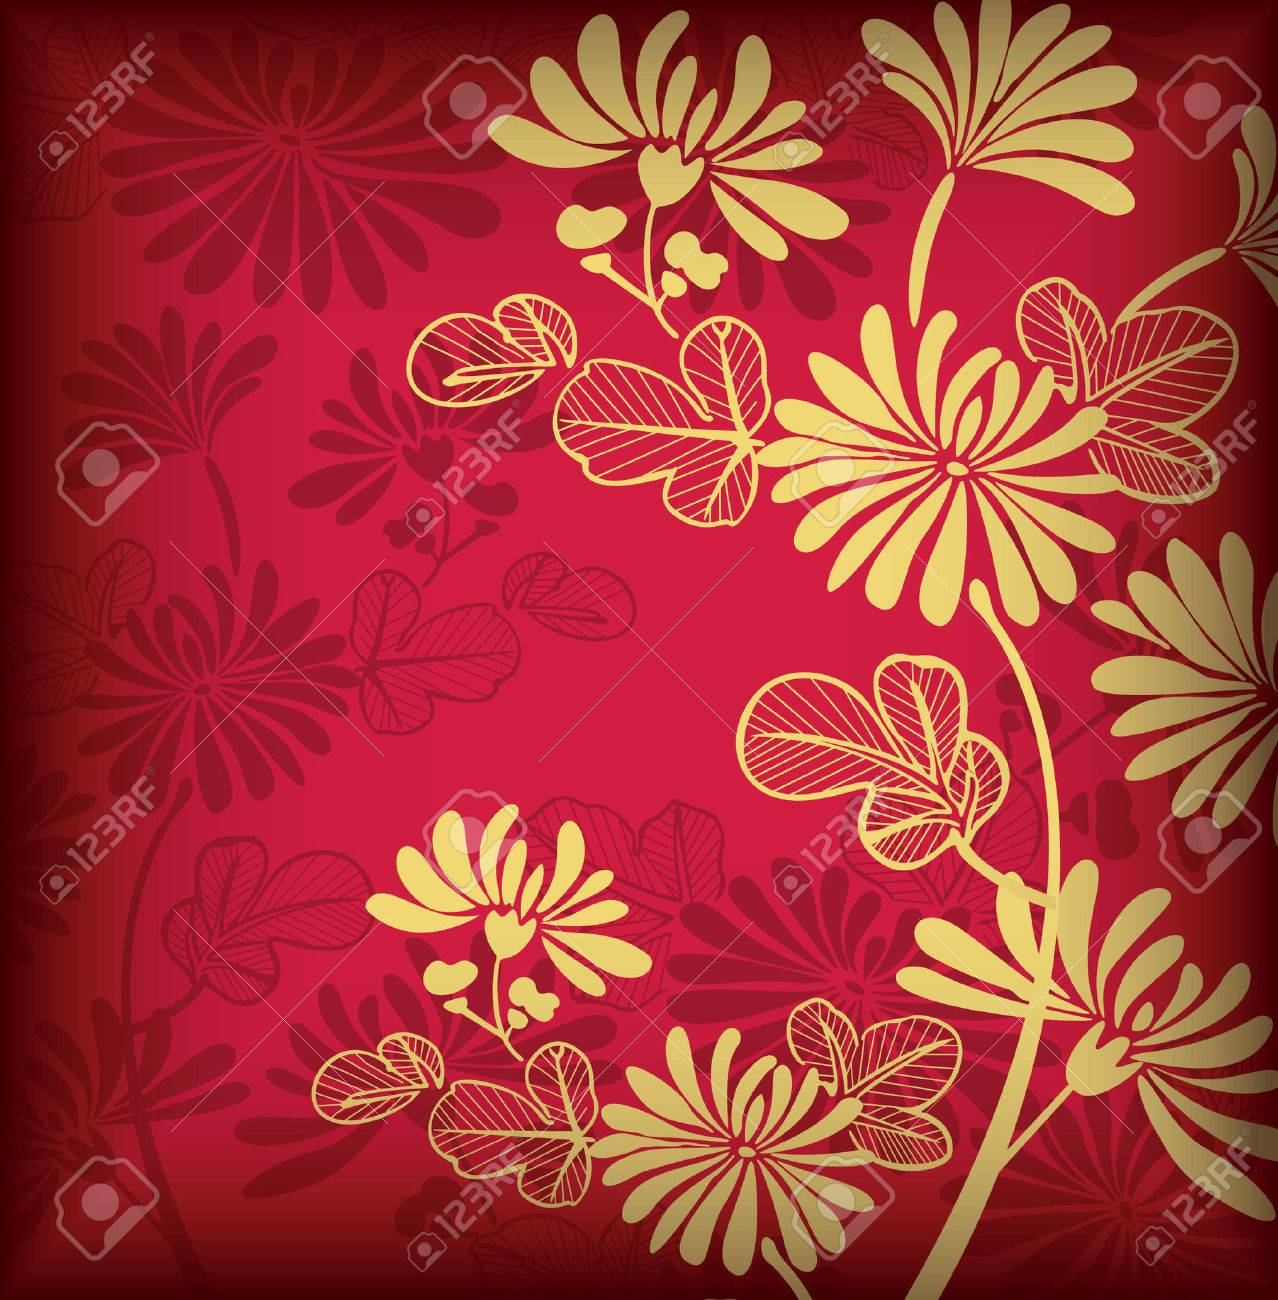 Asia Floral Background for Holidays - 6708333